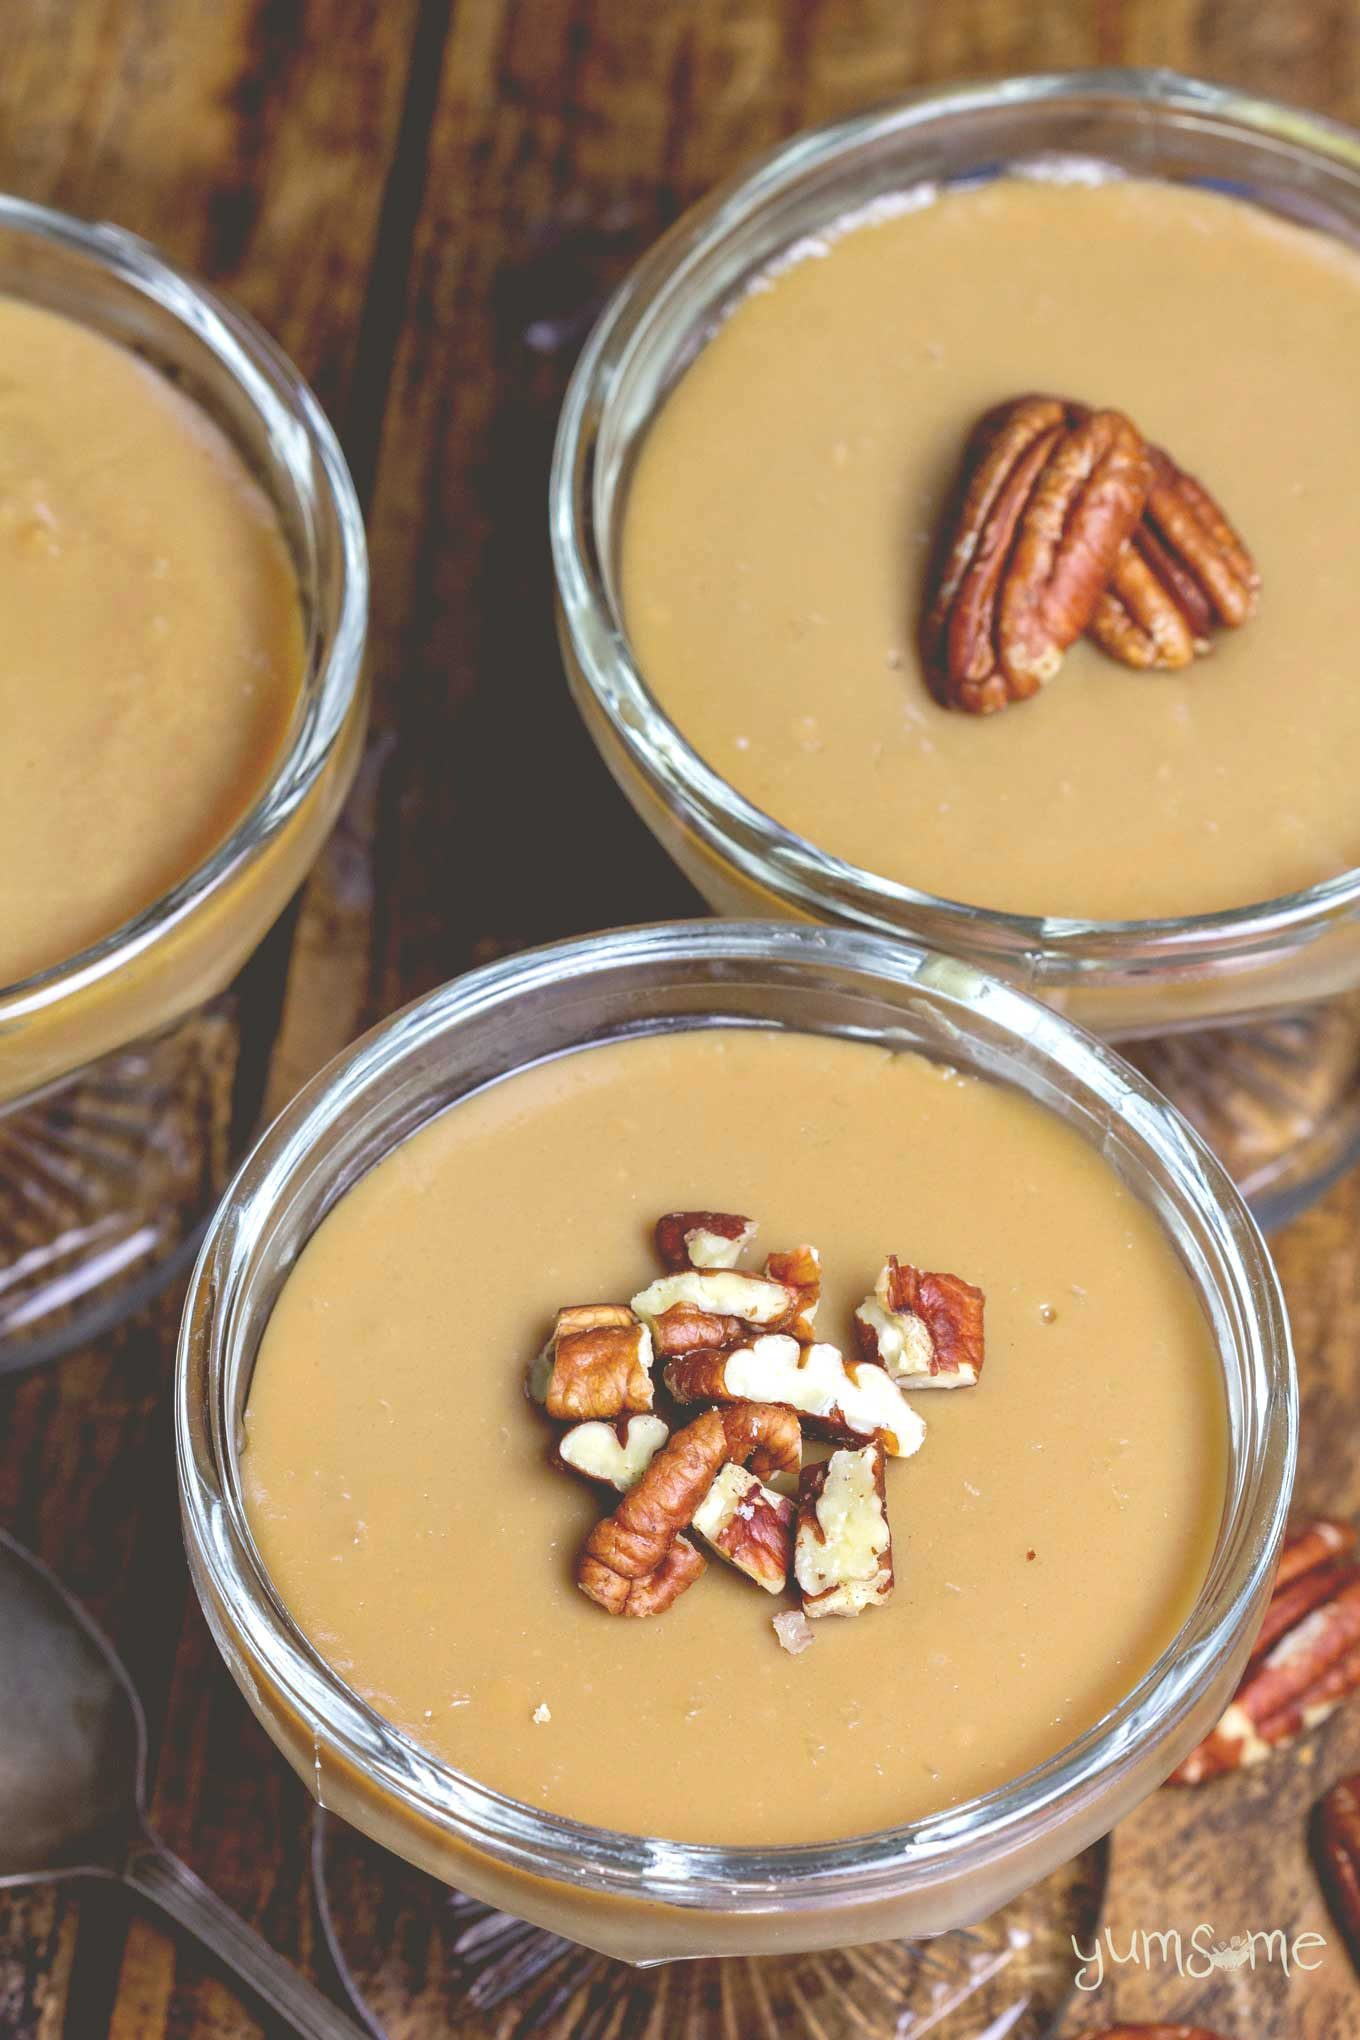 Two bowls of vegan butterscotch pudding, topped with pecans.